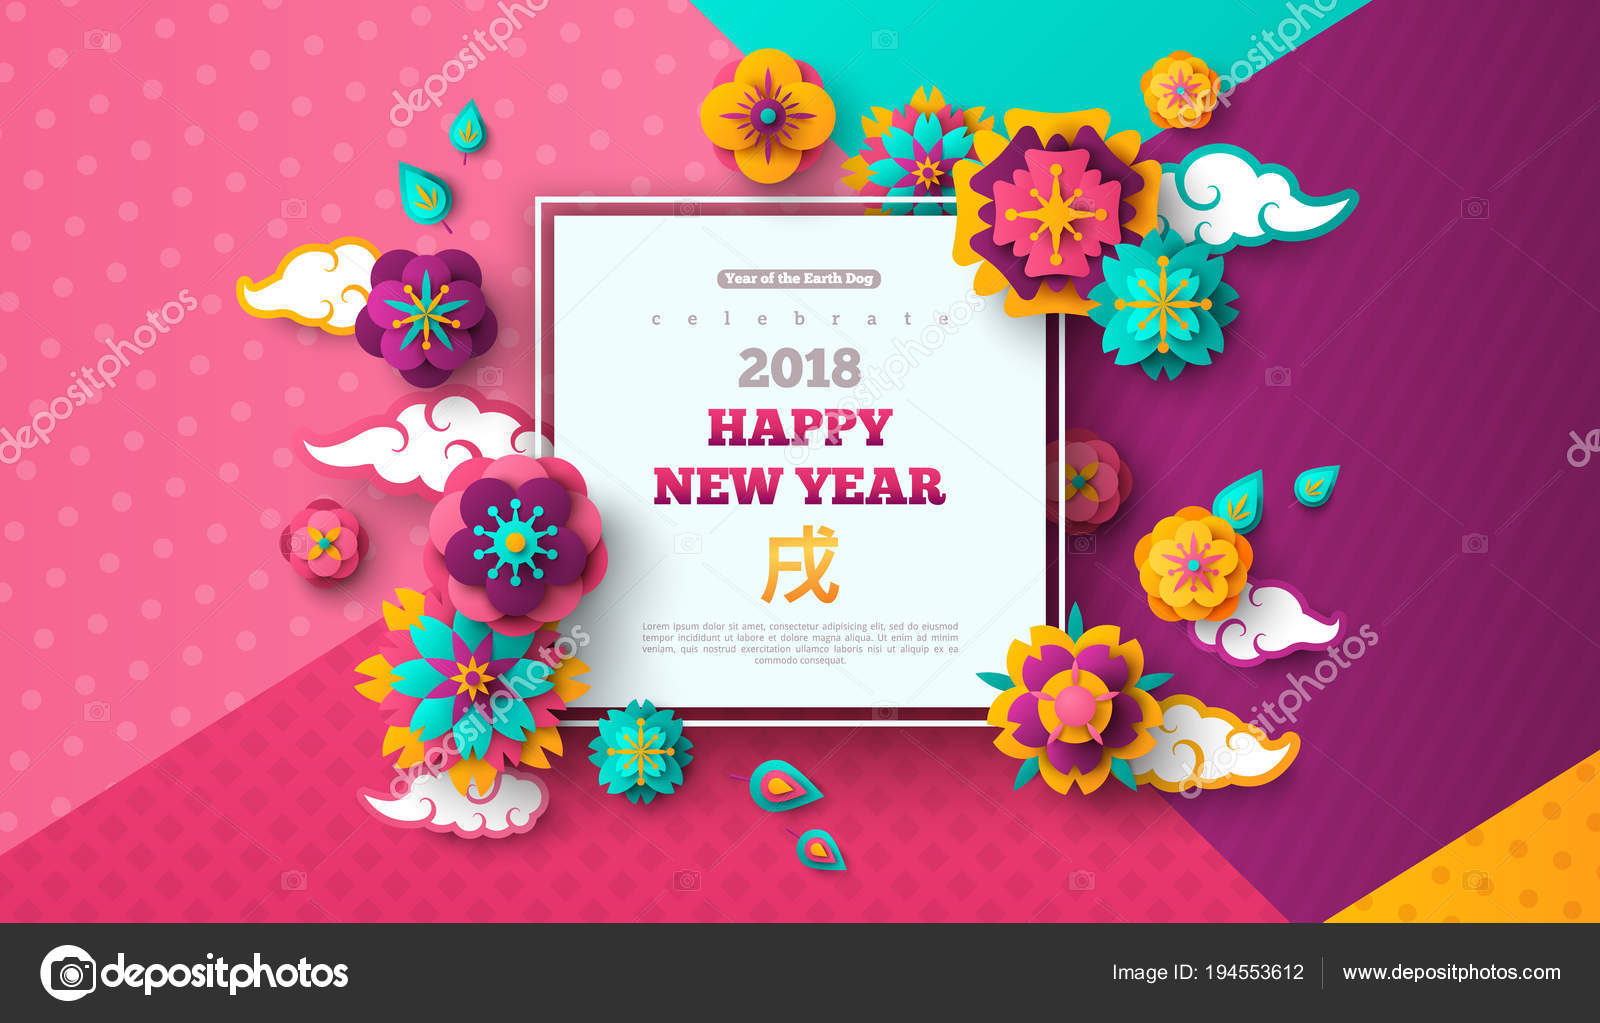 2018 chinese new year greeting card with square frame paper cut flowers and asian clouds on modern geometric background vector illustration